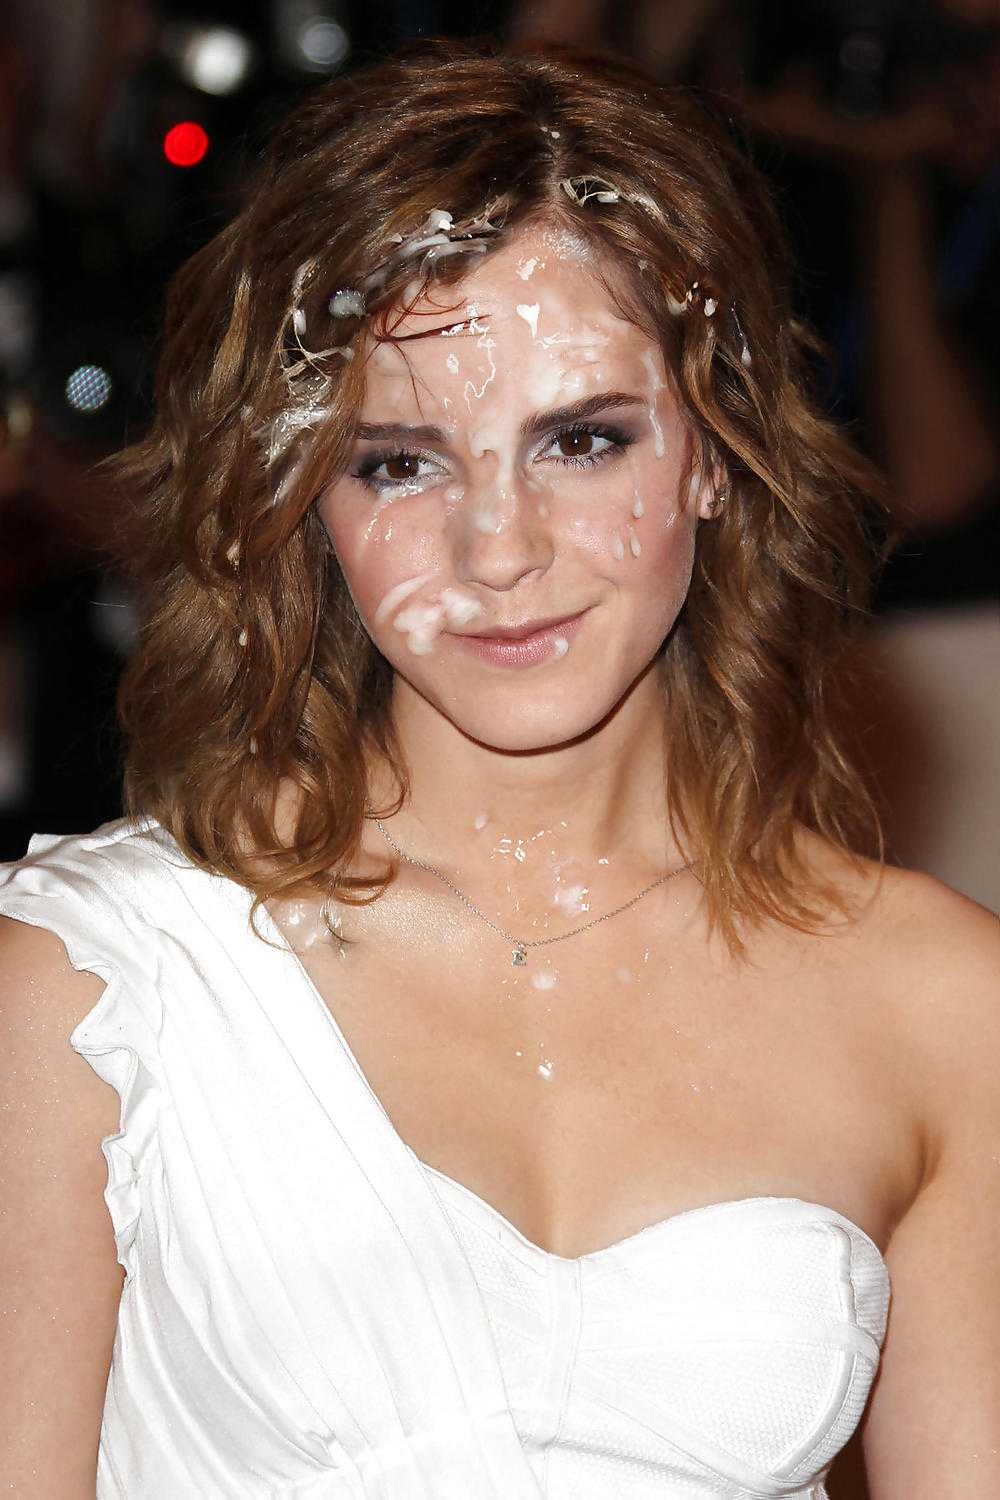 Mtg64 on Twitter: #Fake #EmmaWatson covered by #cum #